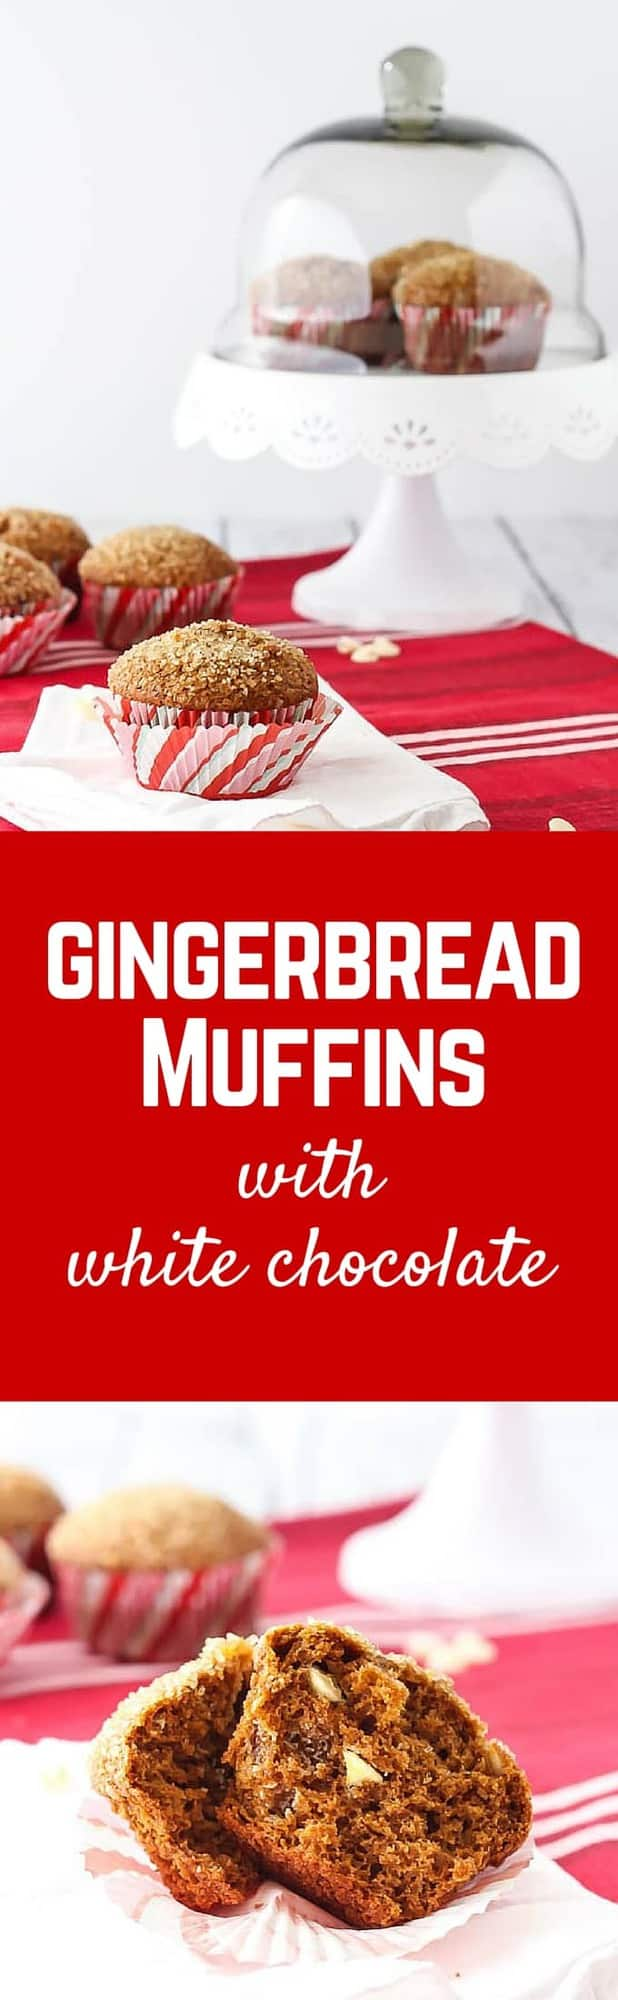 Gingerbread Muffins with White Chocolate Chips are perfect for Christmas morning or any other morning. The crunchy sugar topping makes them completely irresistible. Get the recipe on RachelCooks.com!